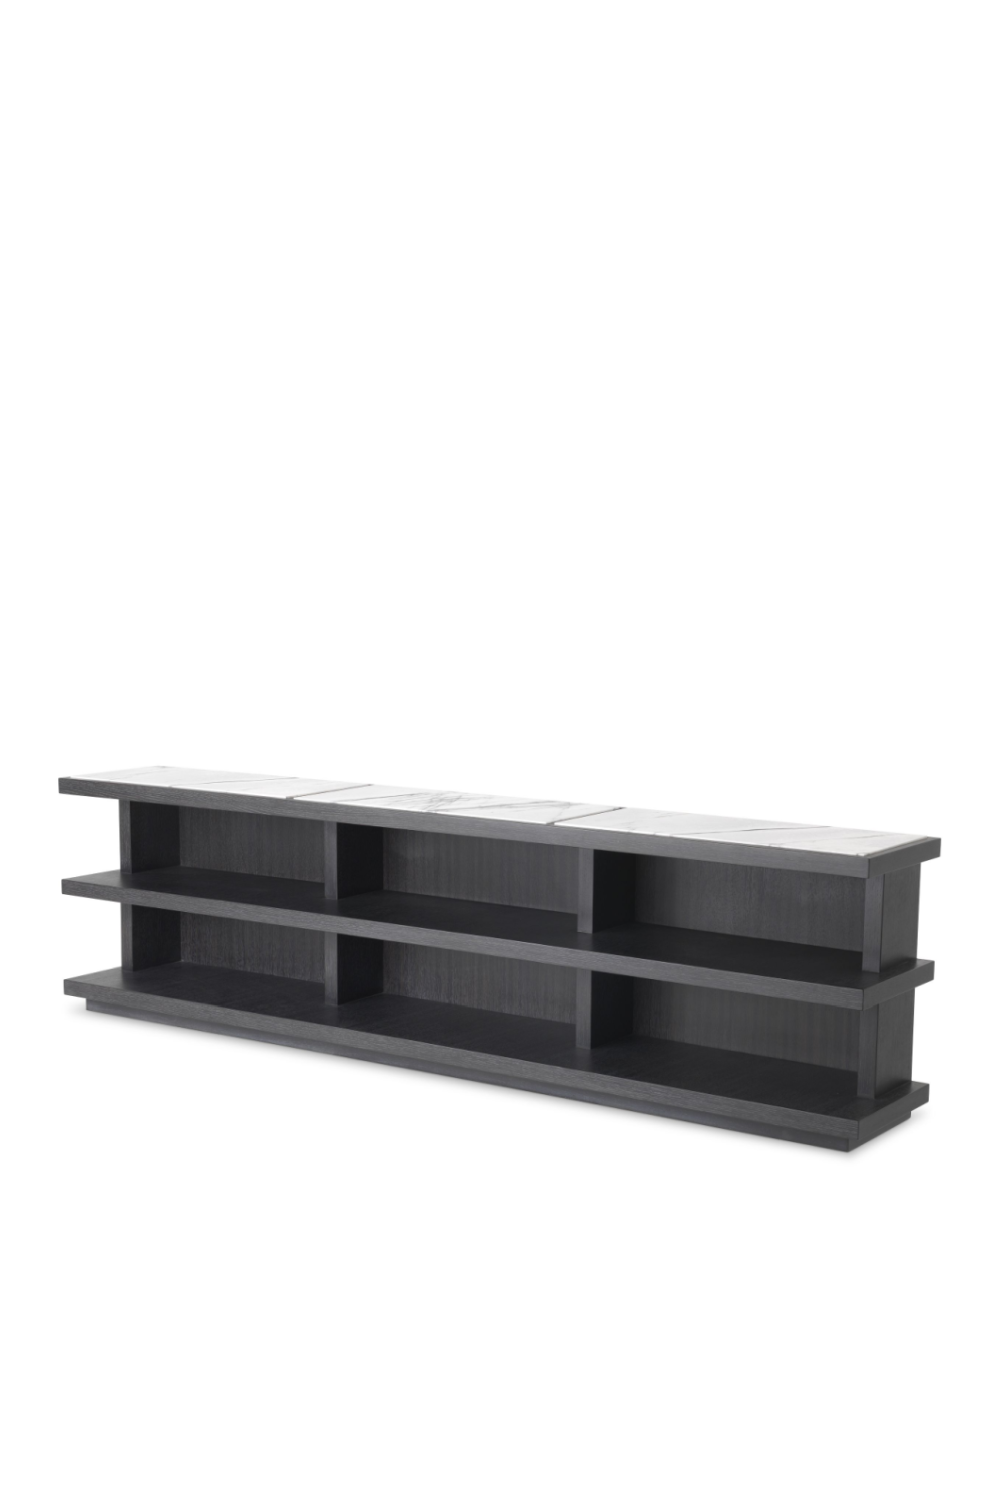 Charcoal Gray Oak TV Cabinet | Eichholtz Miguel